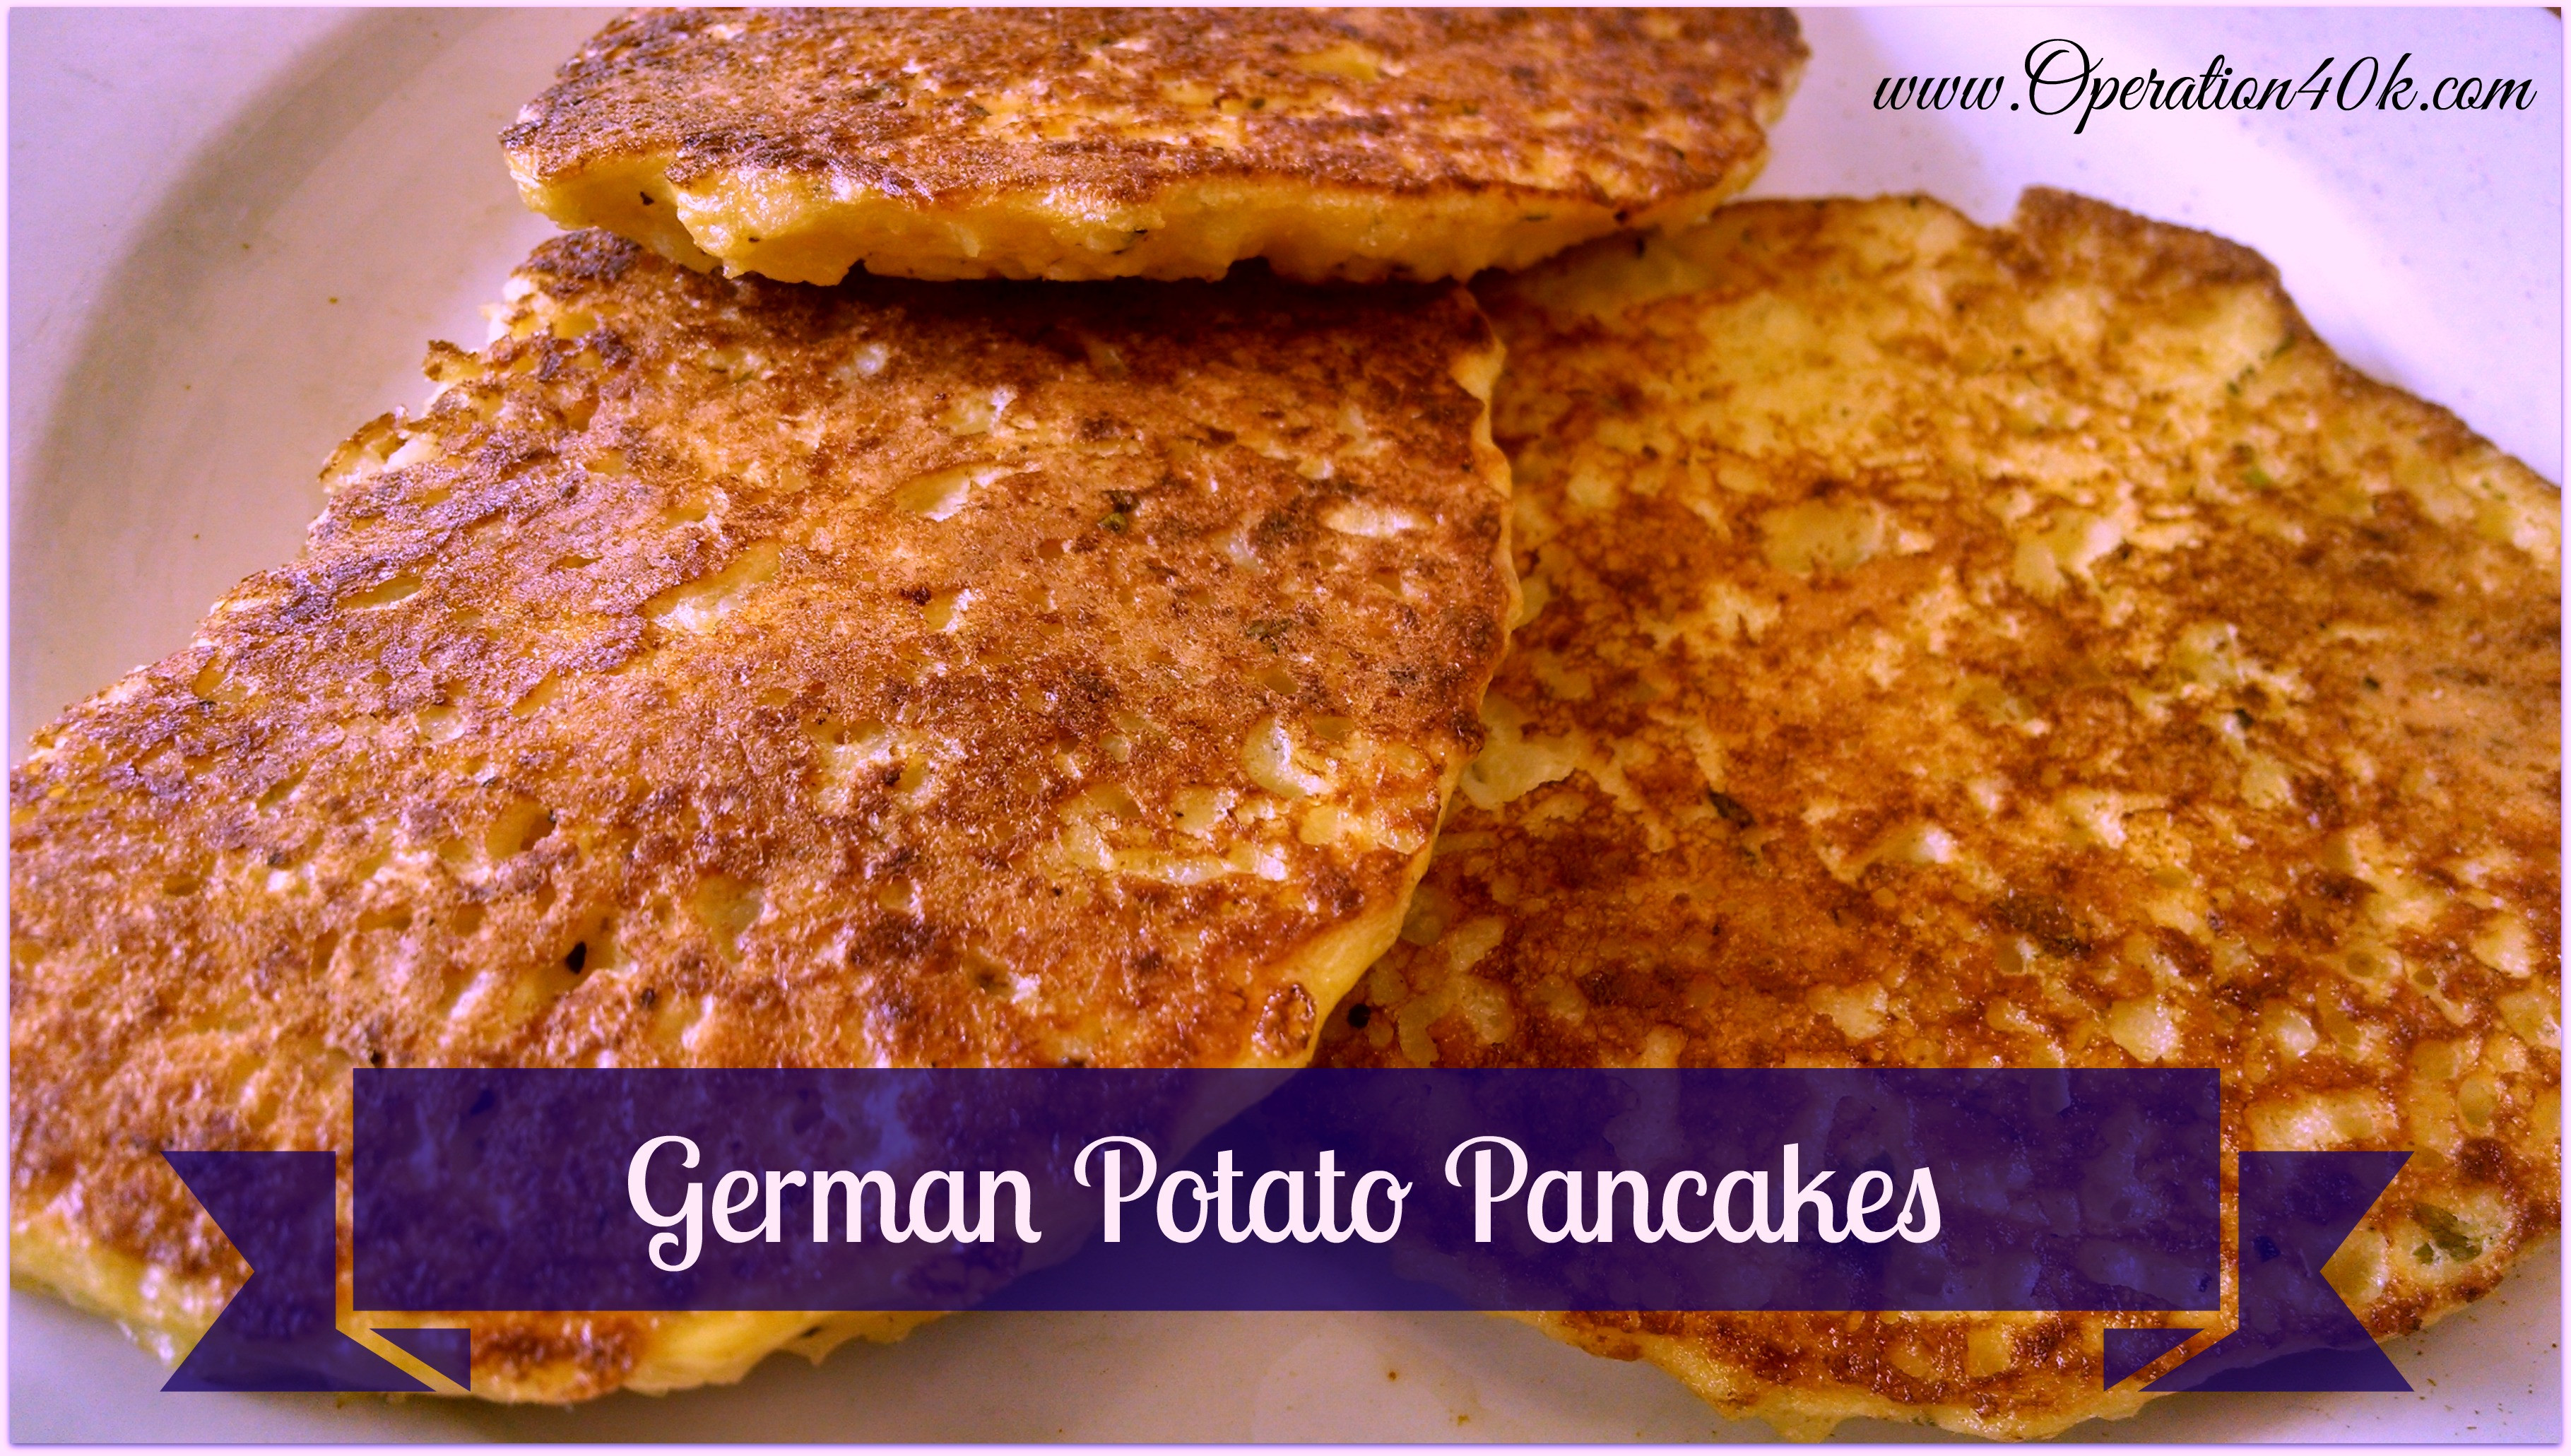 German Potato Pancakes  recipes Archives Page 12 of 43 Operation $40K